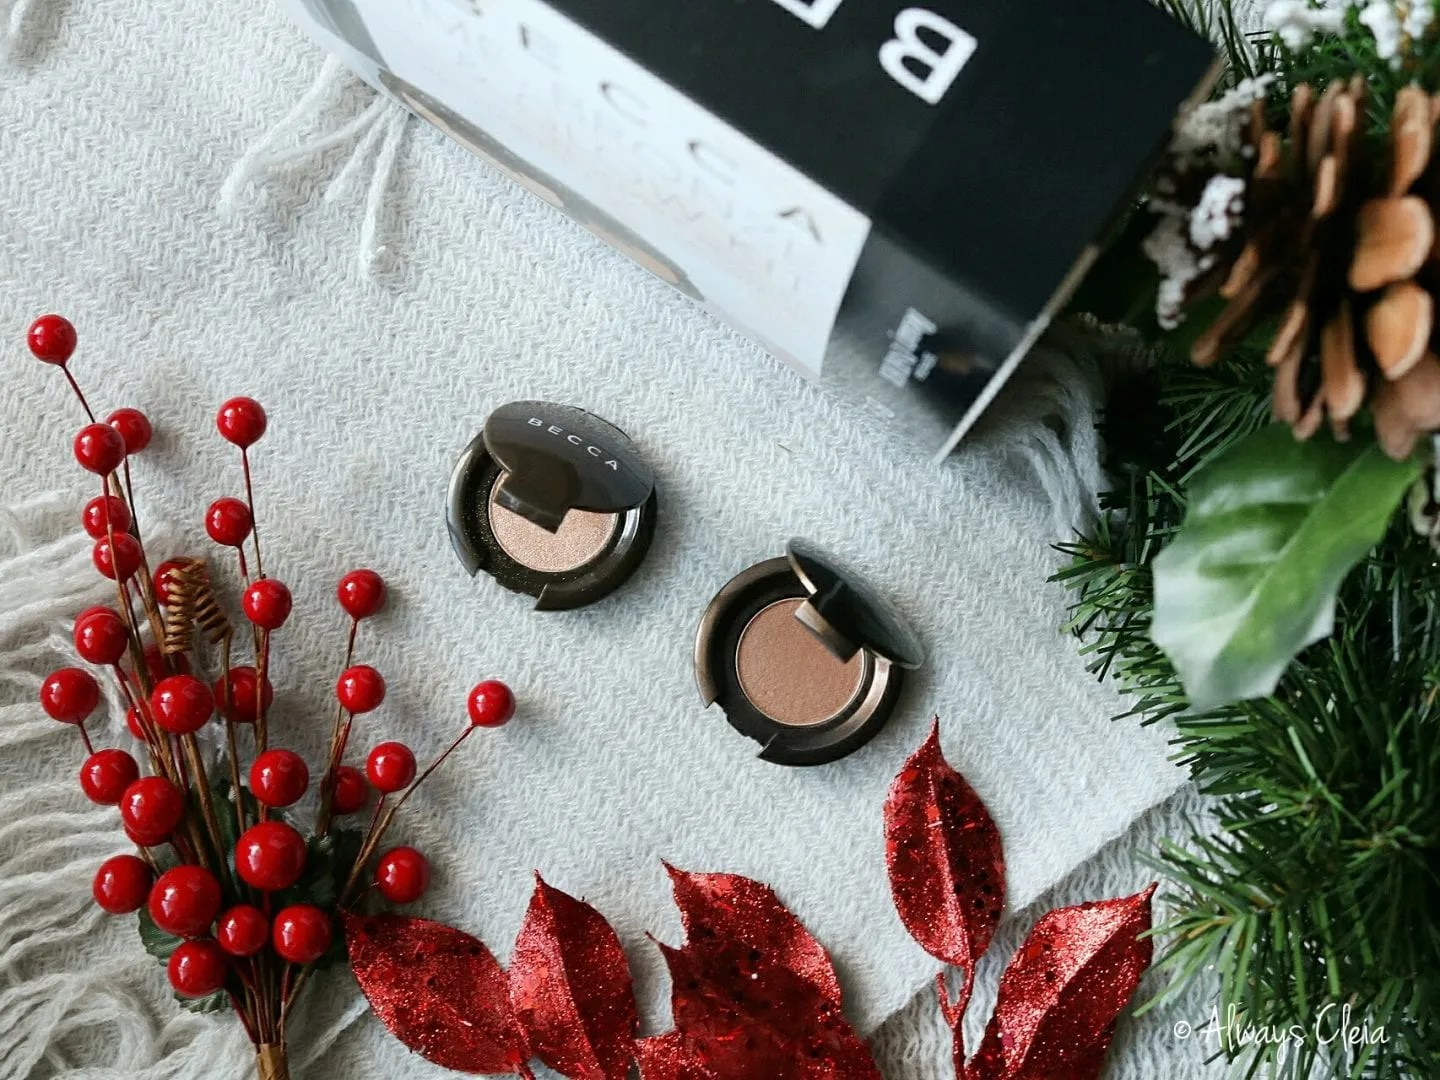 Becca Cosmetics Highlighter & Bronzer